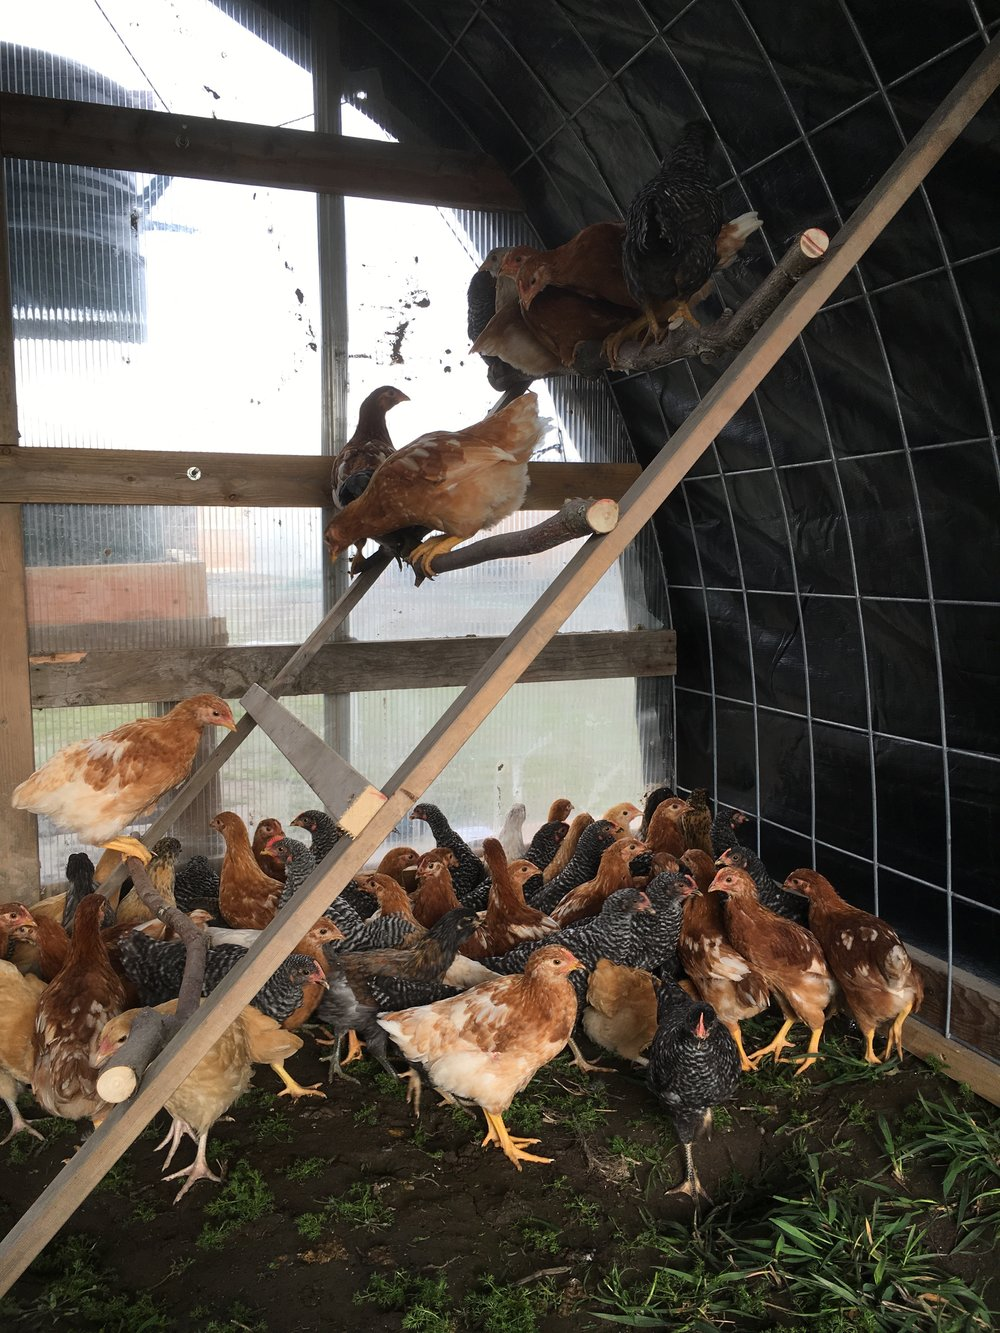 The chickies in their new coop...still a little shell-shocked from the move but stoked about the grass!